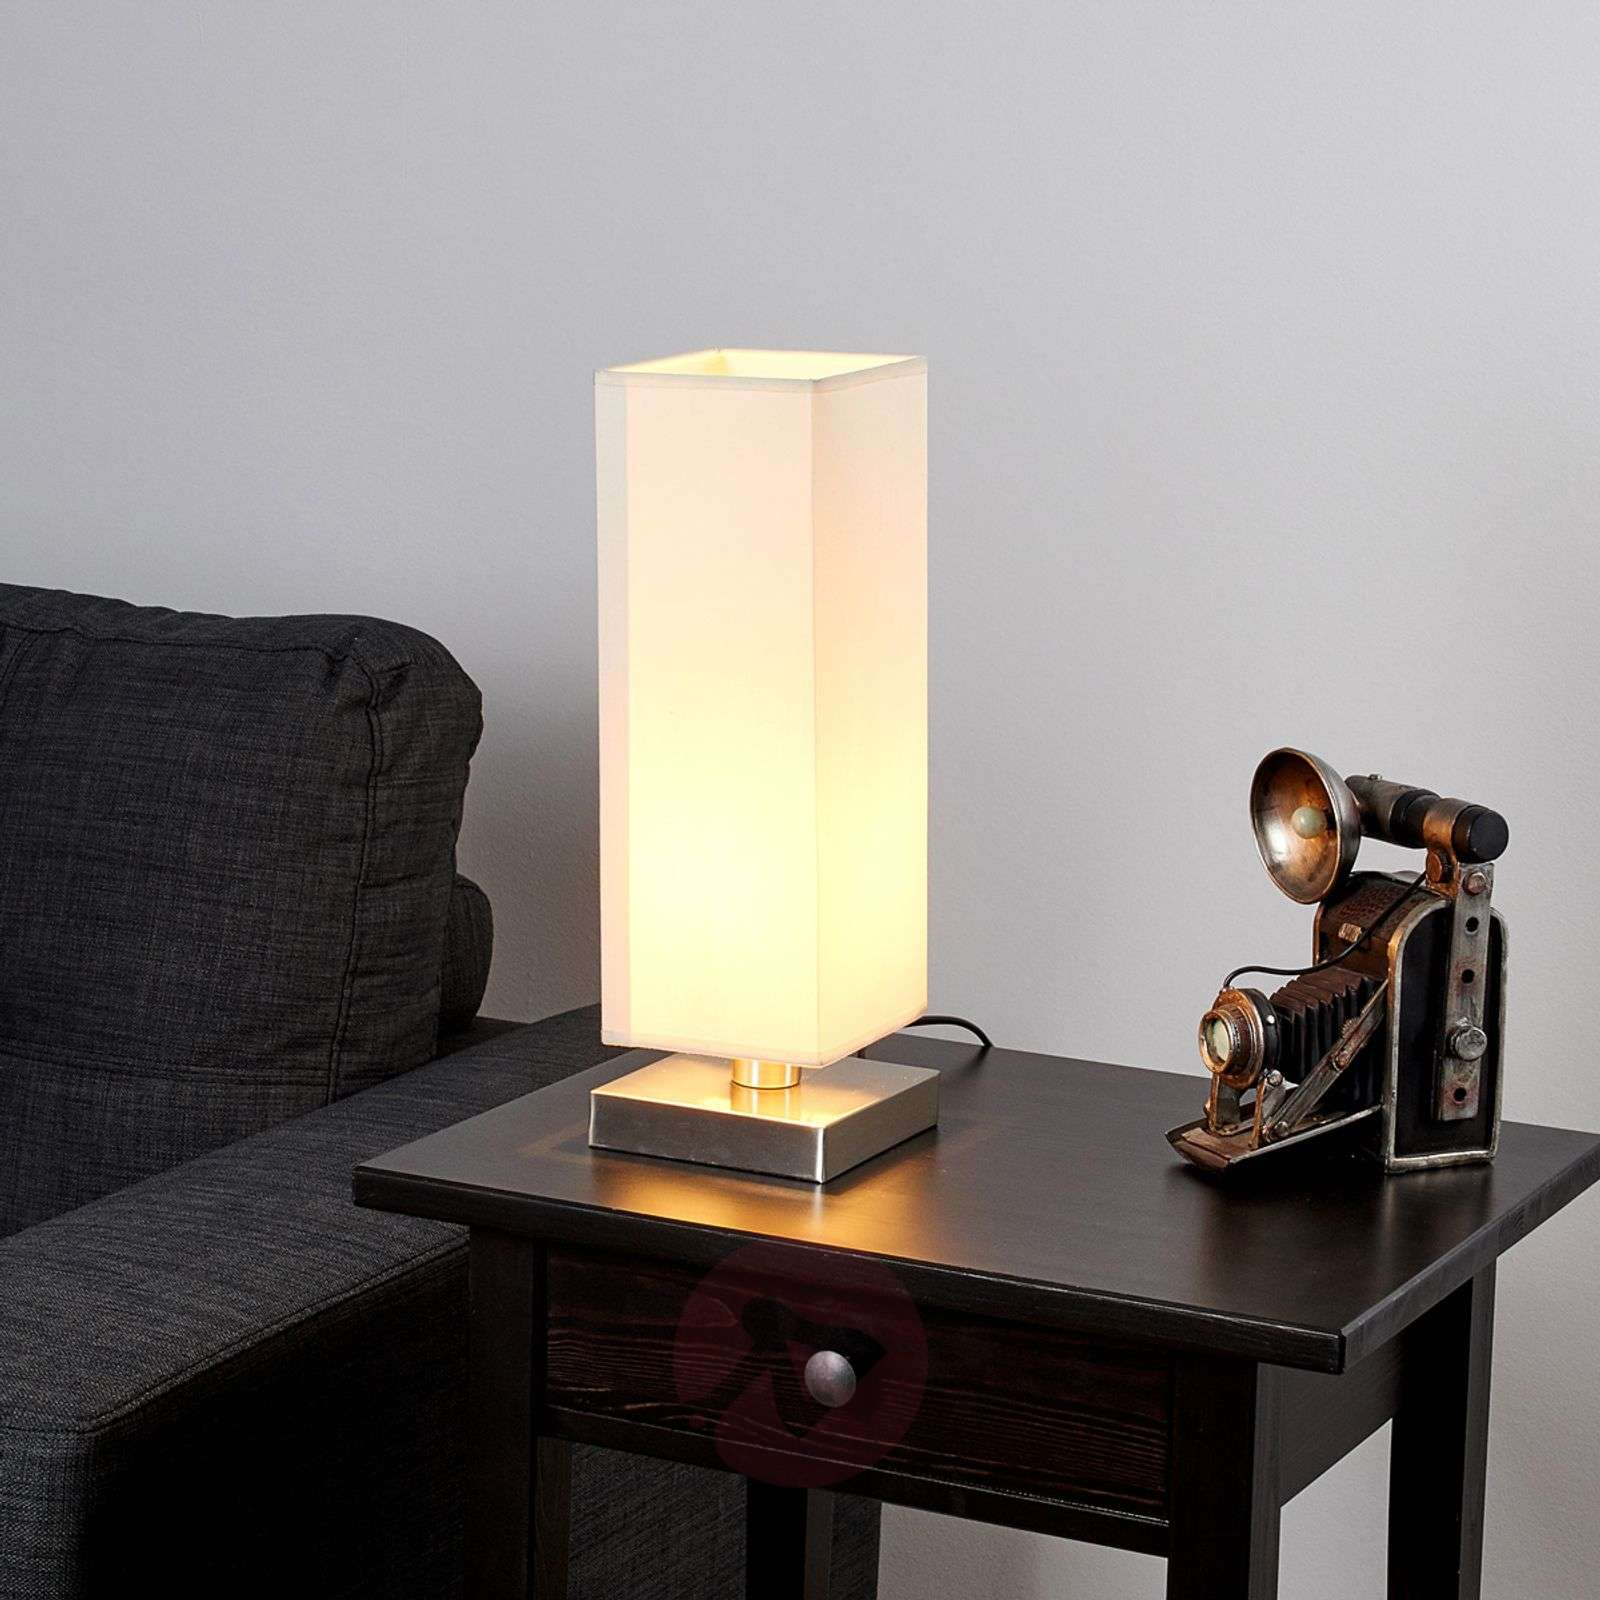 martje white table light with e14 led lamp. Black Bedroom Furniture Sets. Home Design Ideas